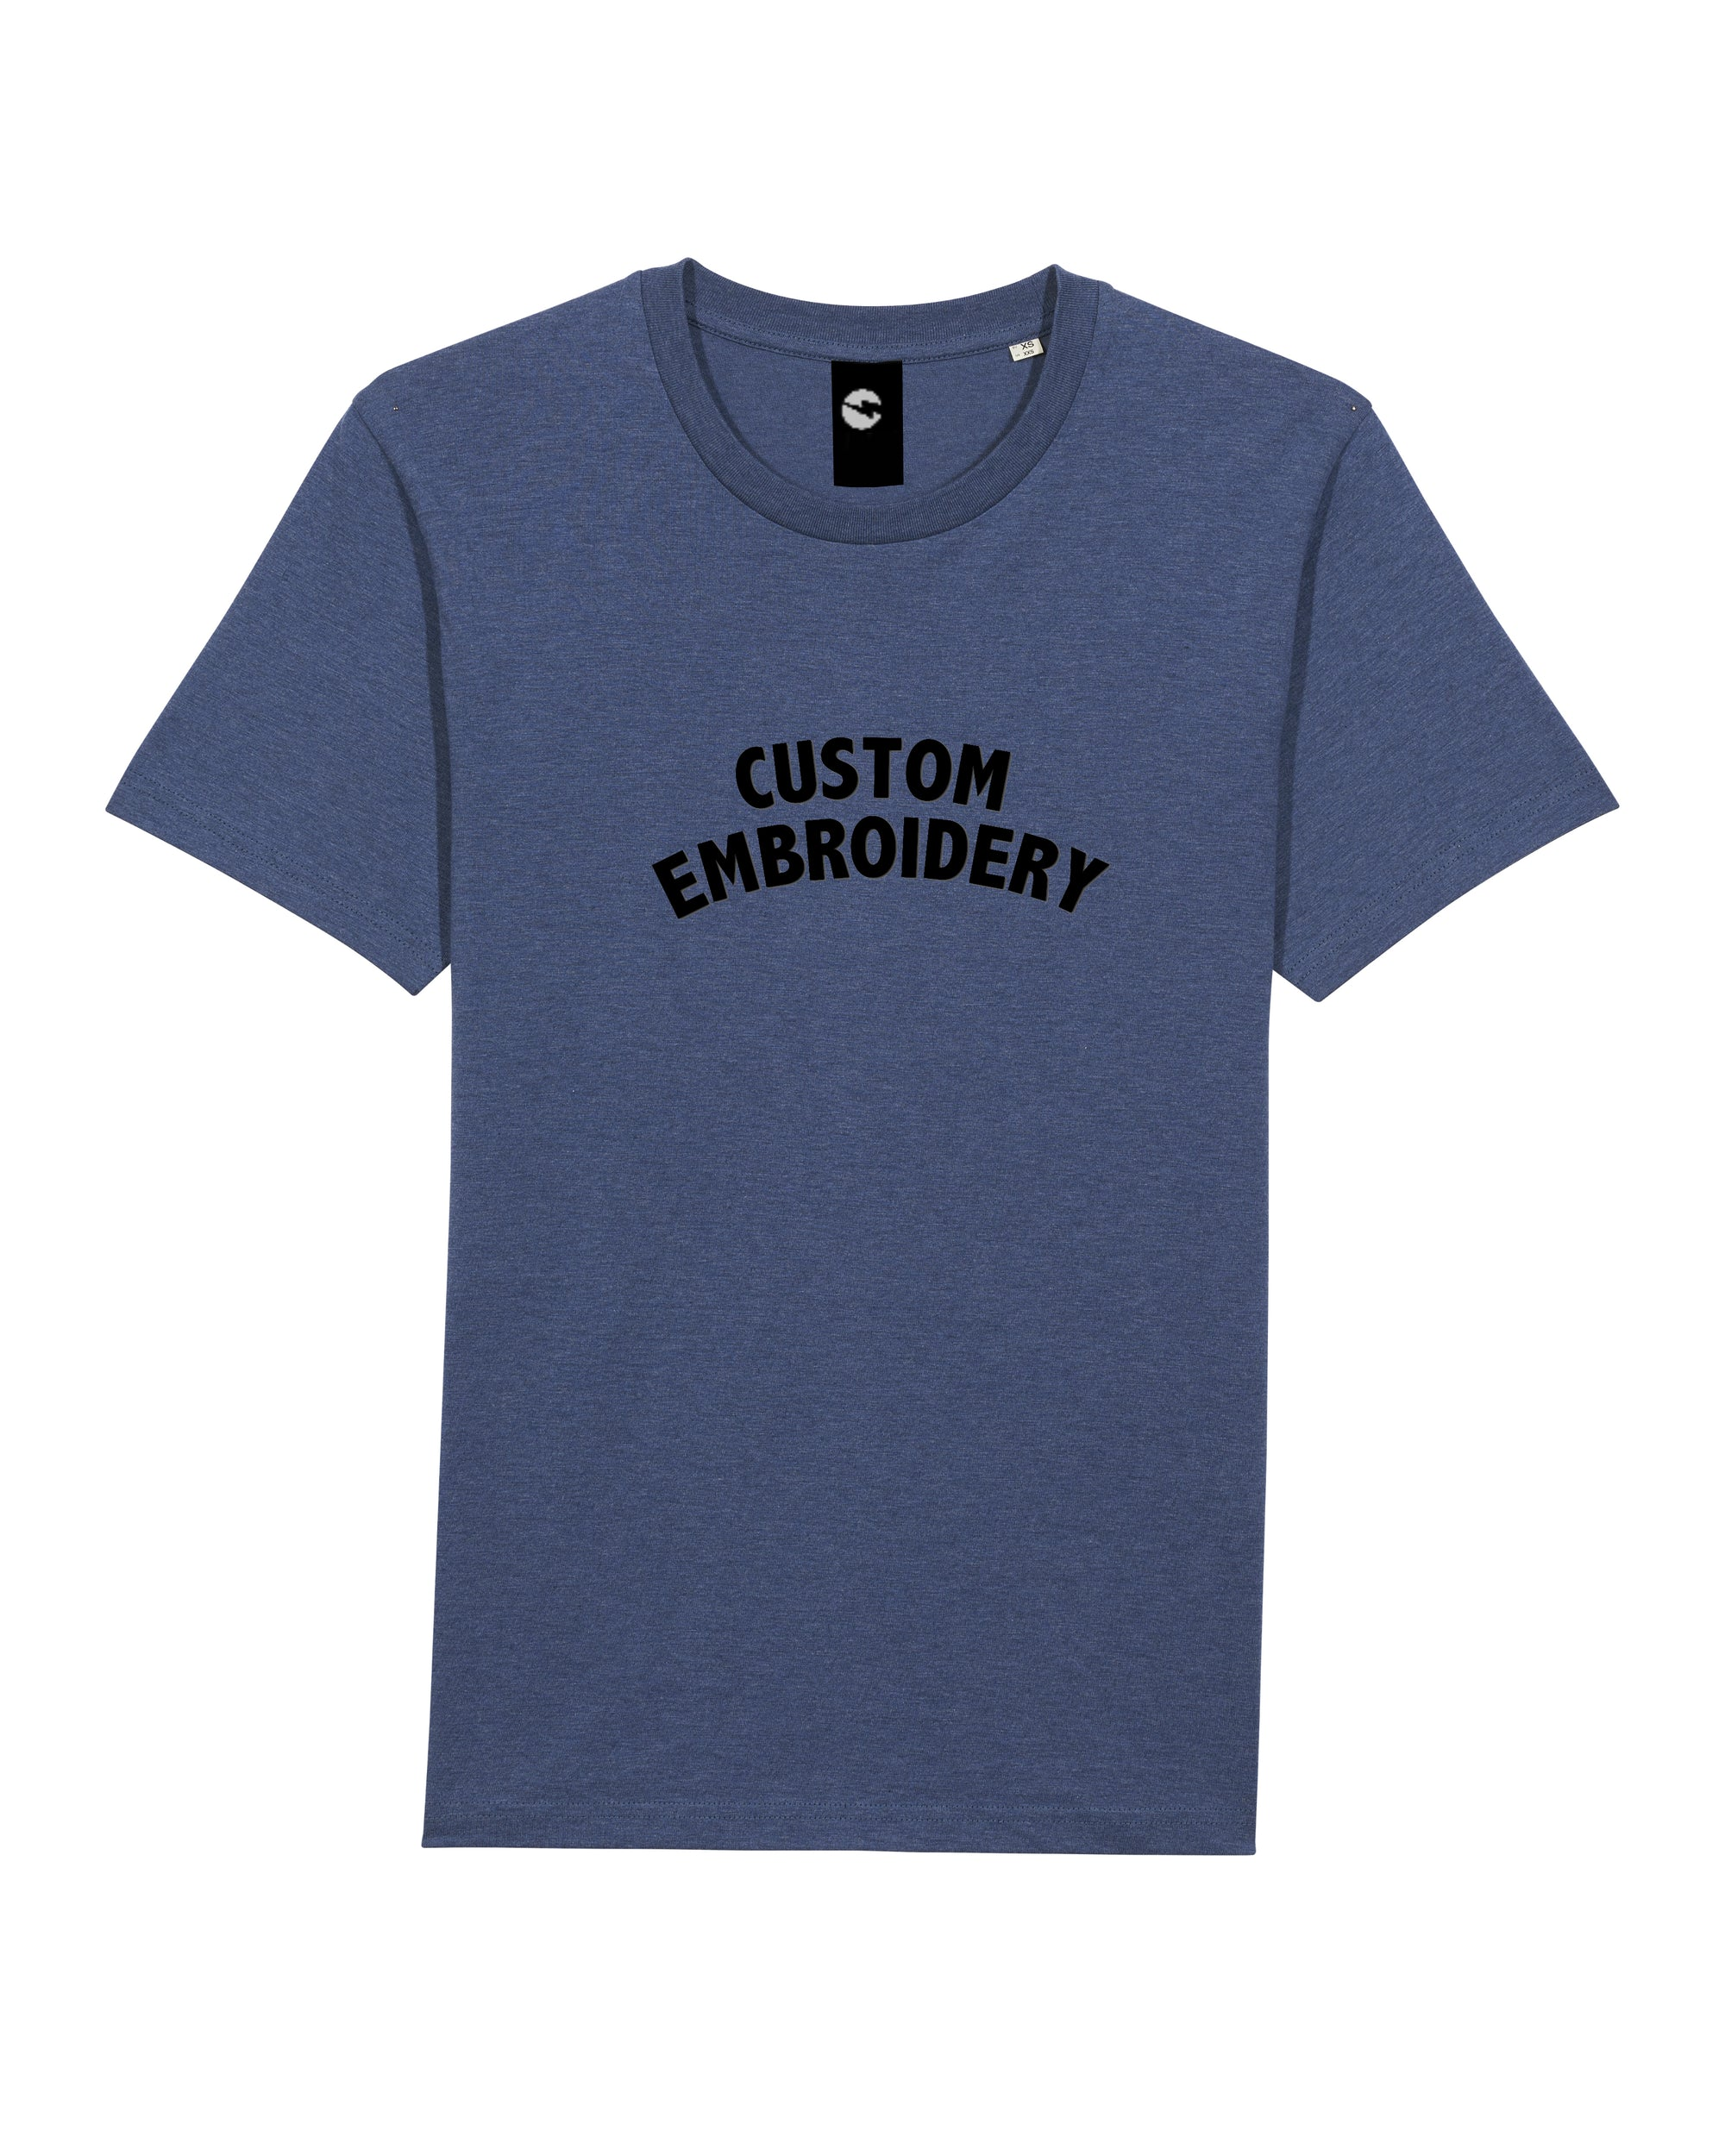 UNISEX MEDIUM FIT ORGANIC COTTON T-SHIRT - customisable centre chest embroidery